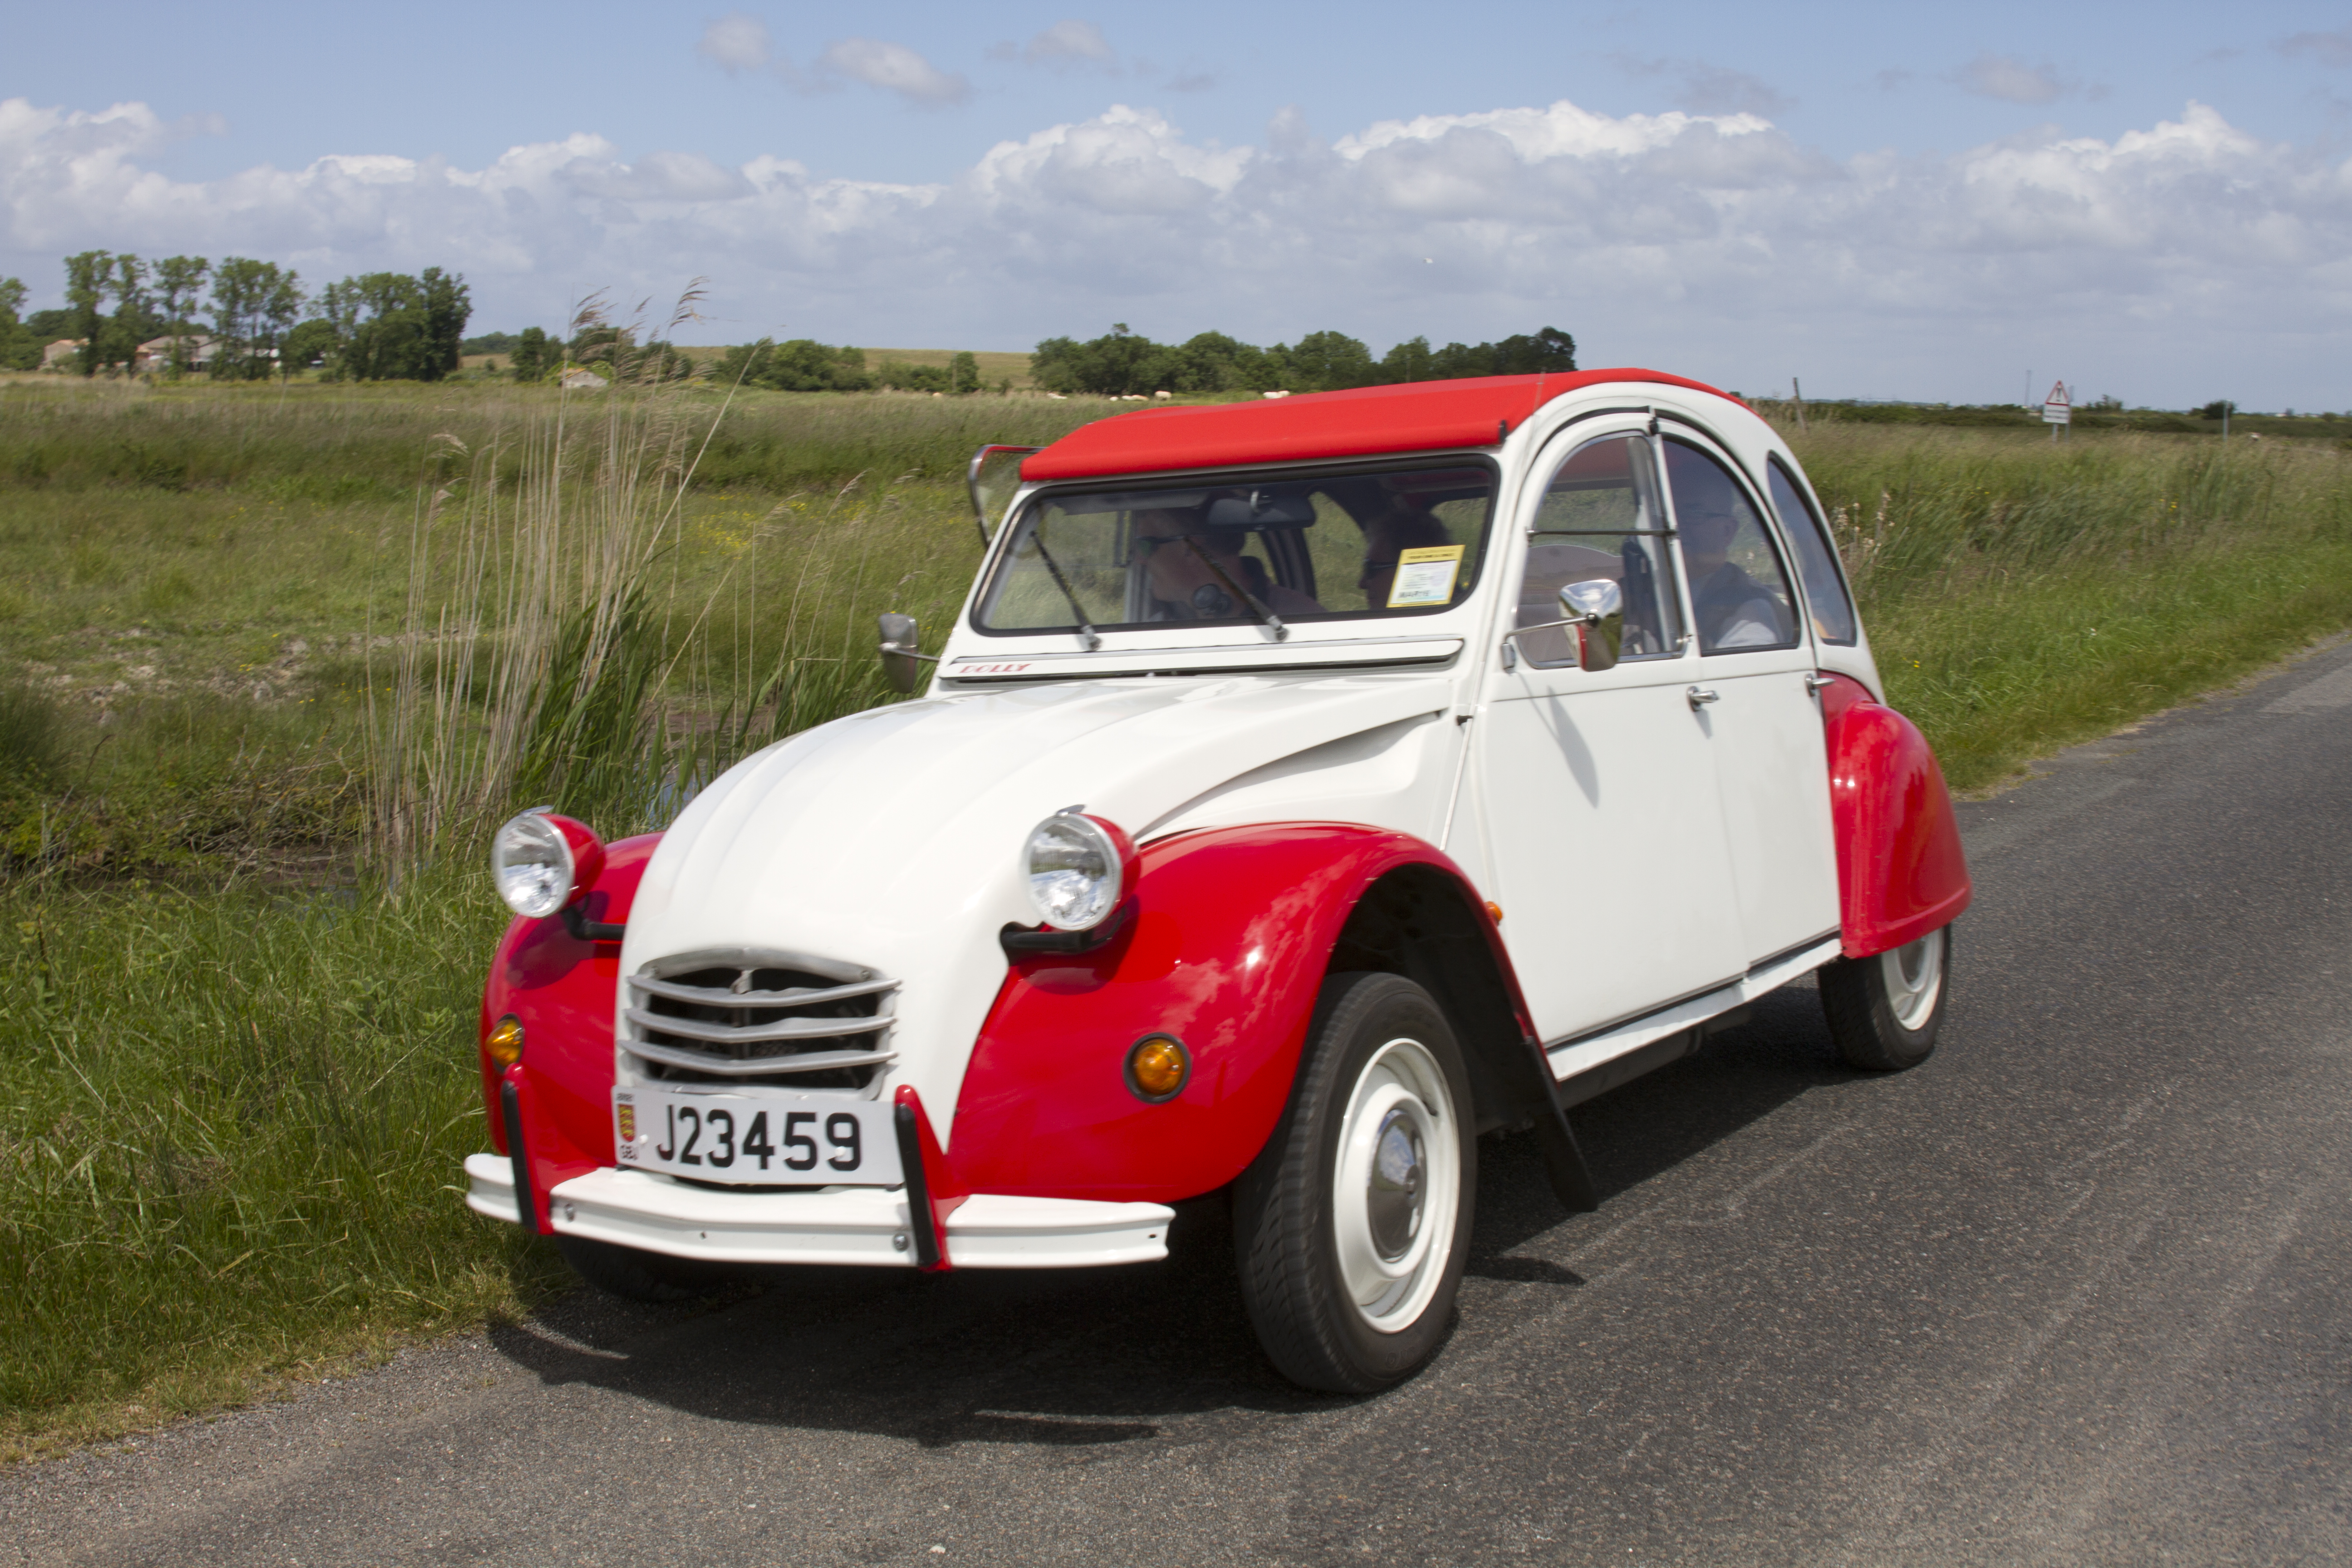 2cv dolly on country lane